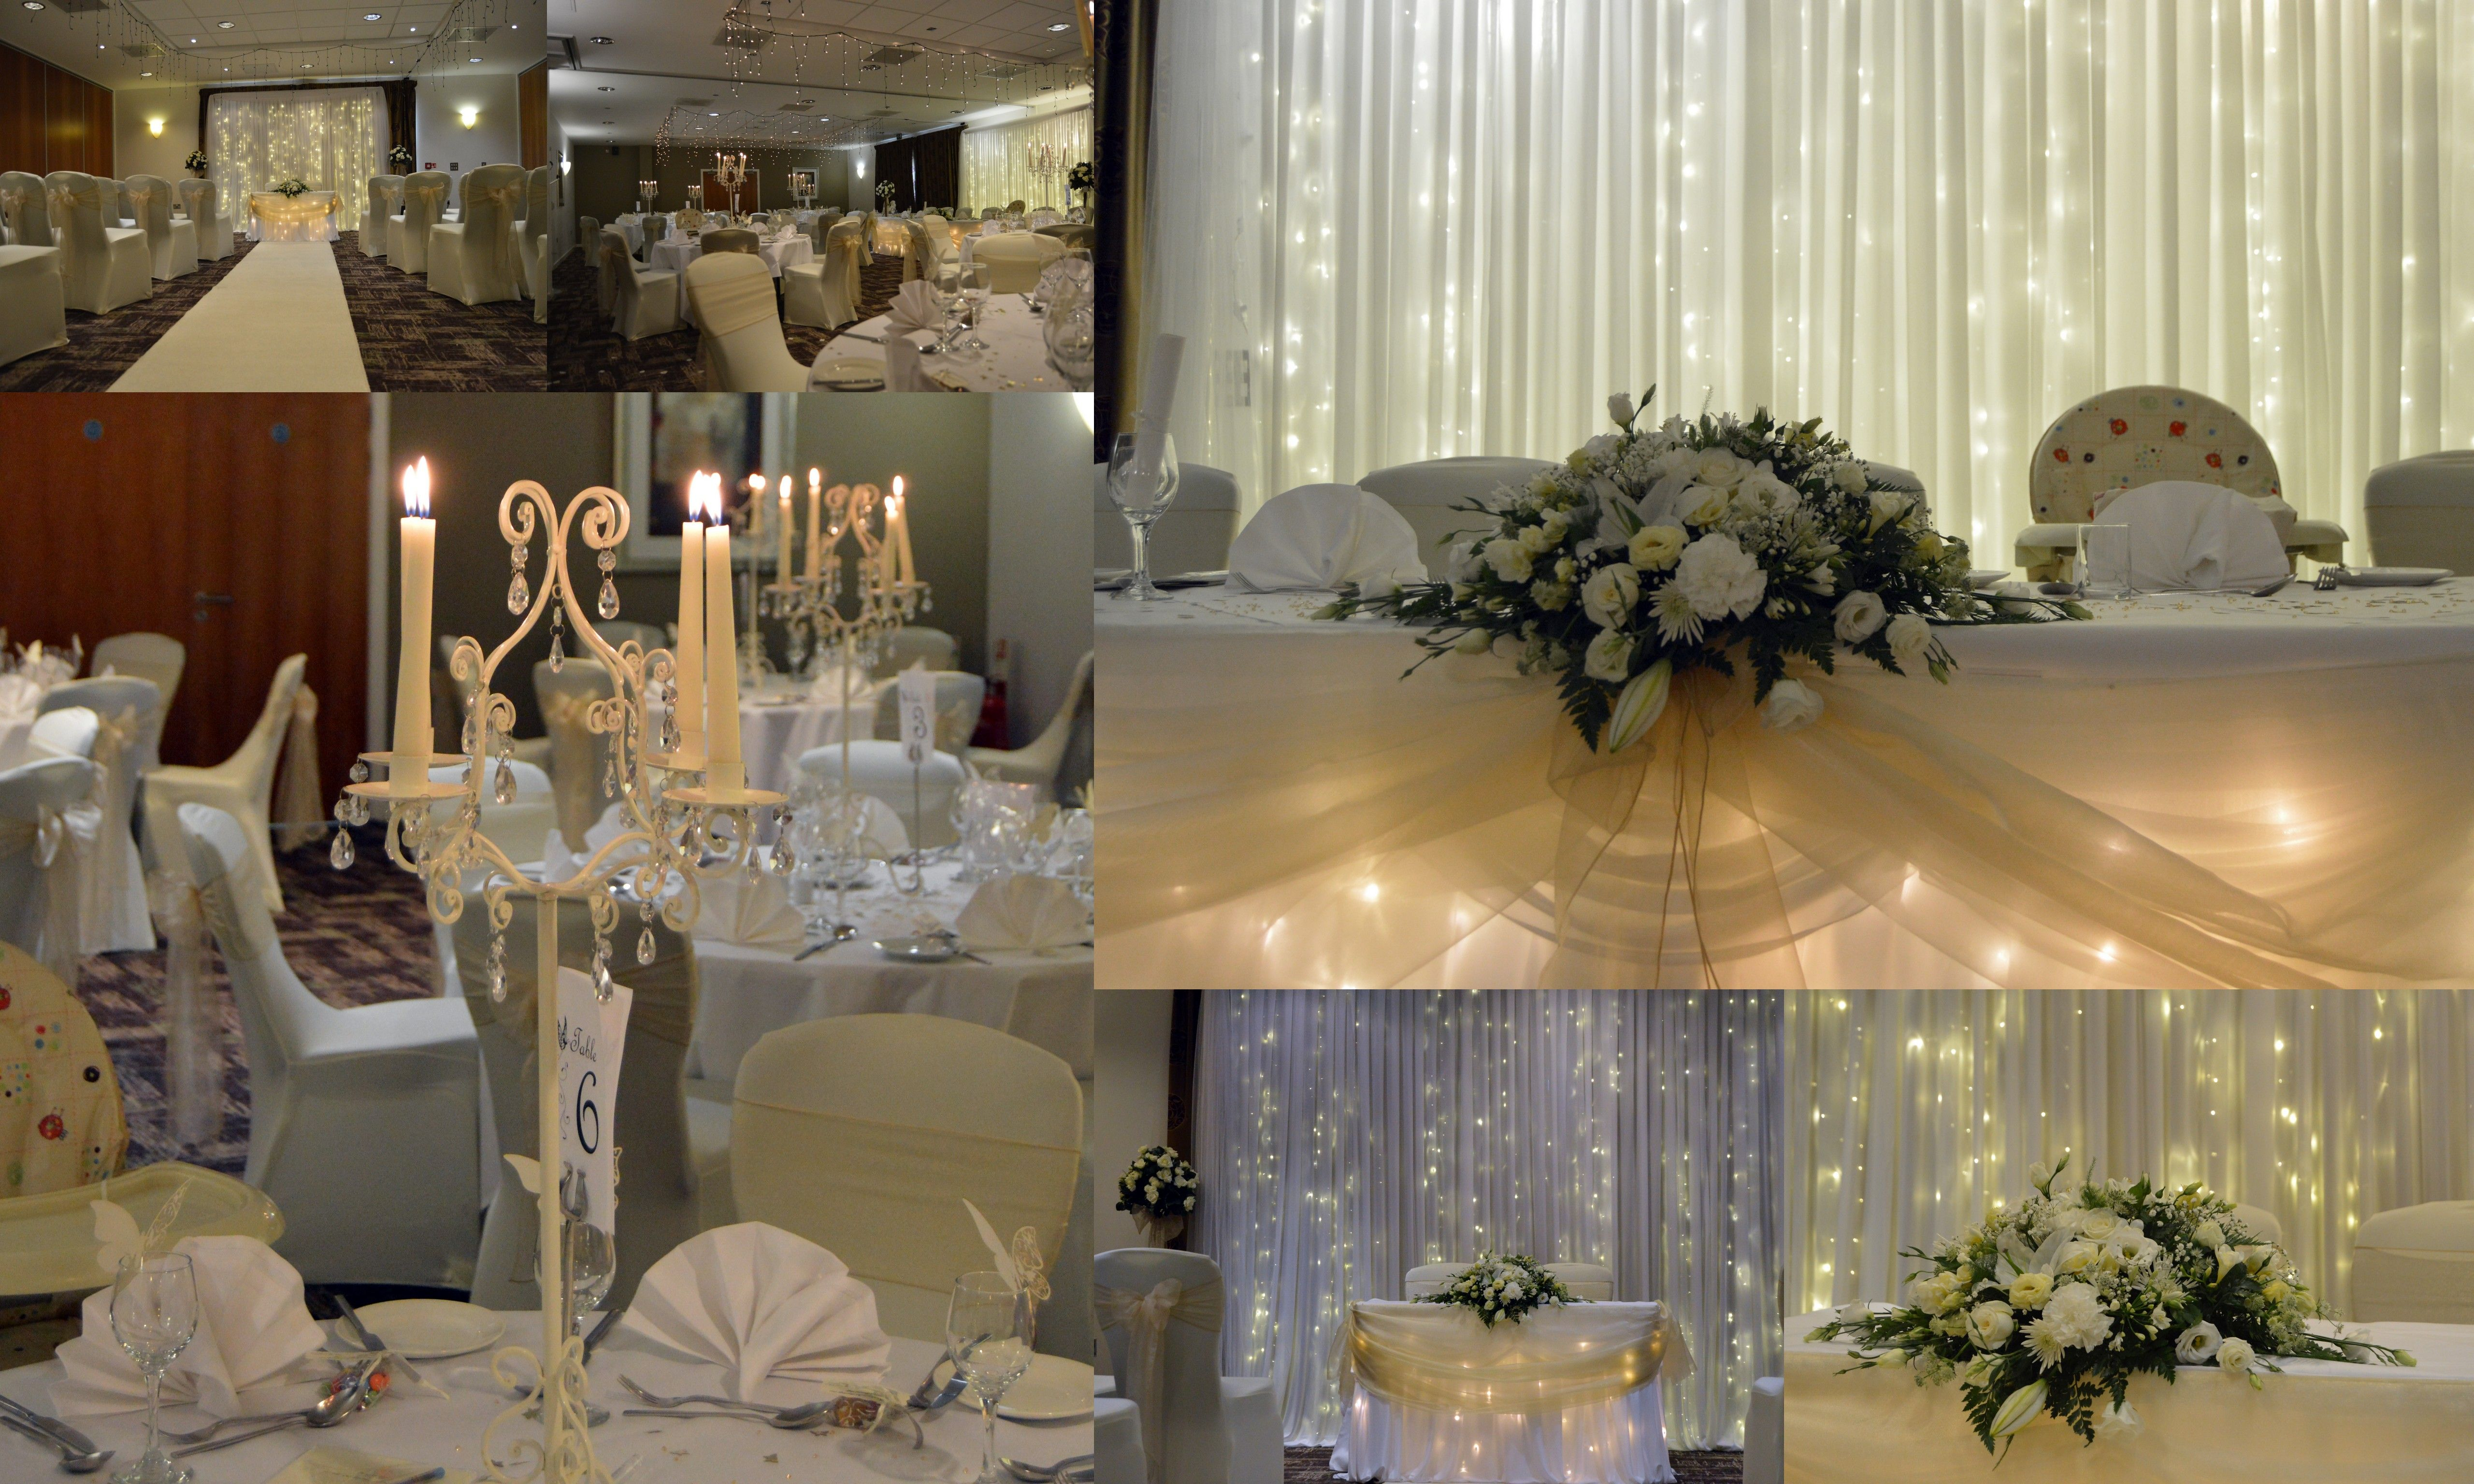 wedding chair cover hire wrexham poang design history we decorated the whole of this except for flowers on registrar top table which were by vivid floral champagne coloured sashes white covers